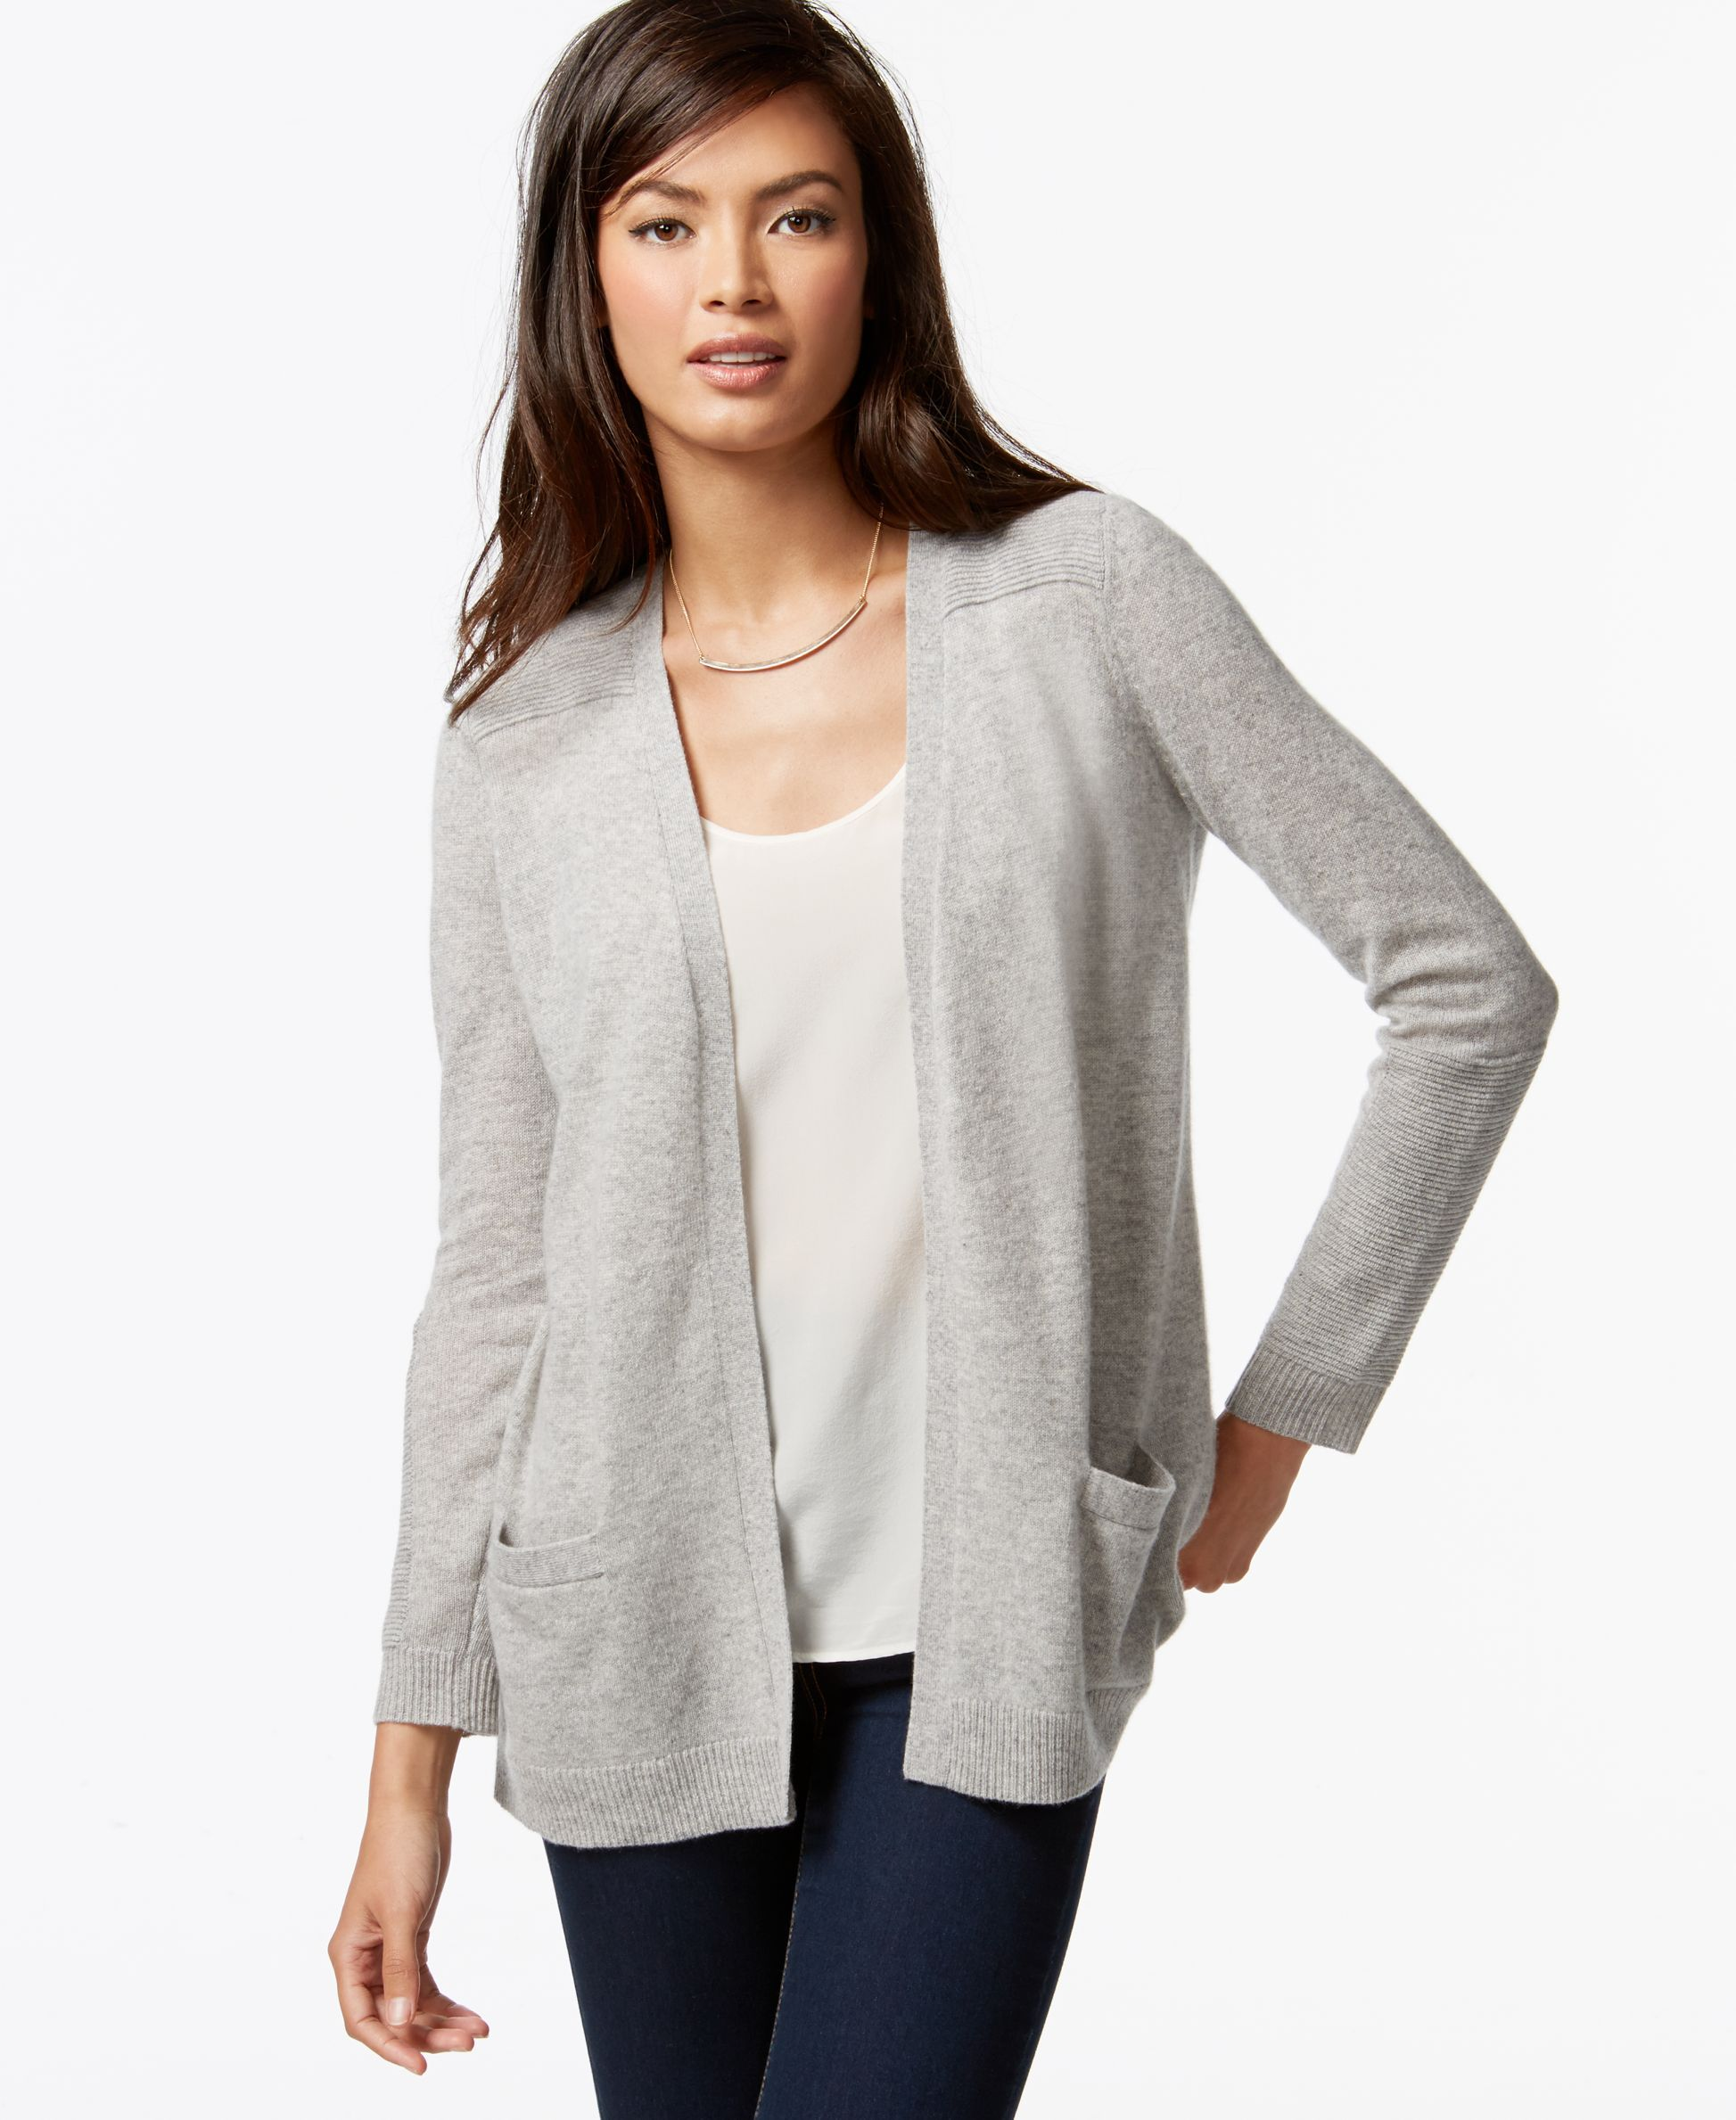 Charter Club Cashmere Open-Front Cardigan | Products | Pinterest ...